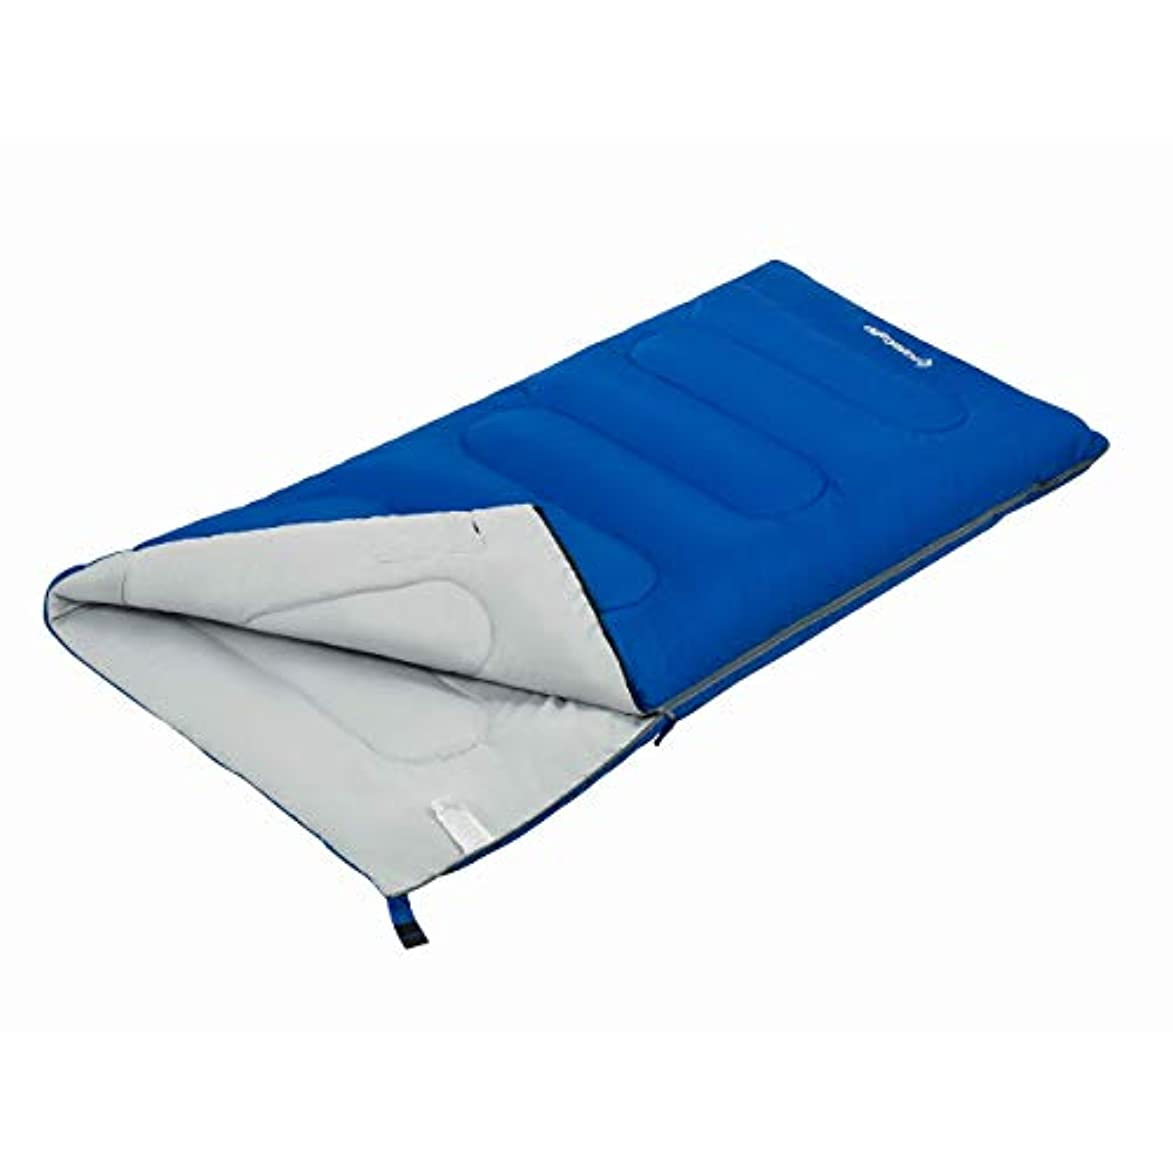 スタジオ広範囲にアンソロジーKingCamp Adults Sleeping Bag with Compression Sack- Lightweight Waterproof Envelope Warm 10.4f/-12c Oversize Extreme Wide, Great for Camping Hiking Traveling Outdoor Activities [並行輸入品]